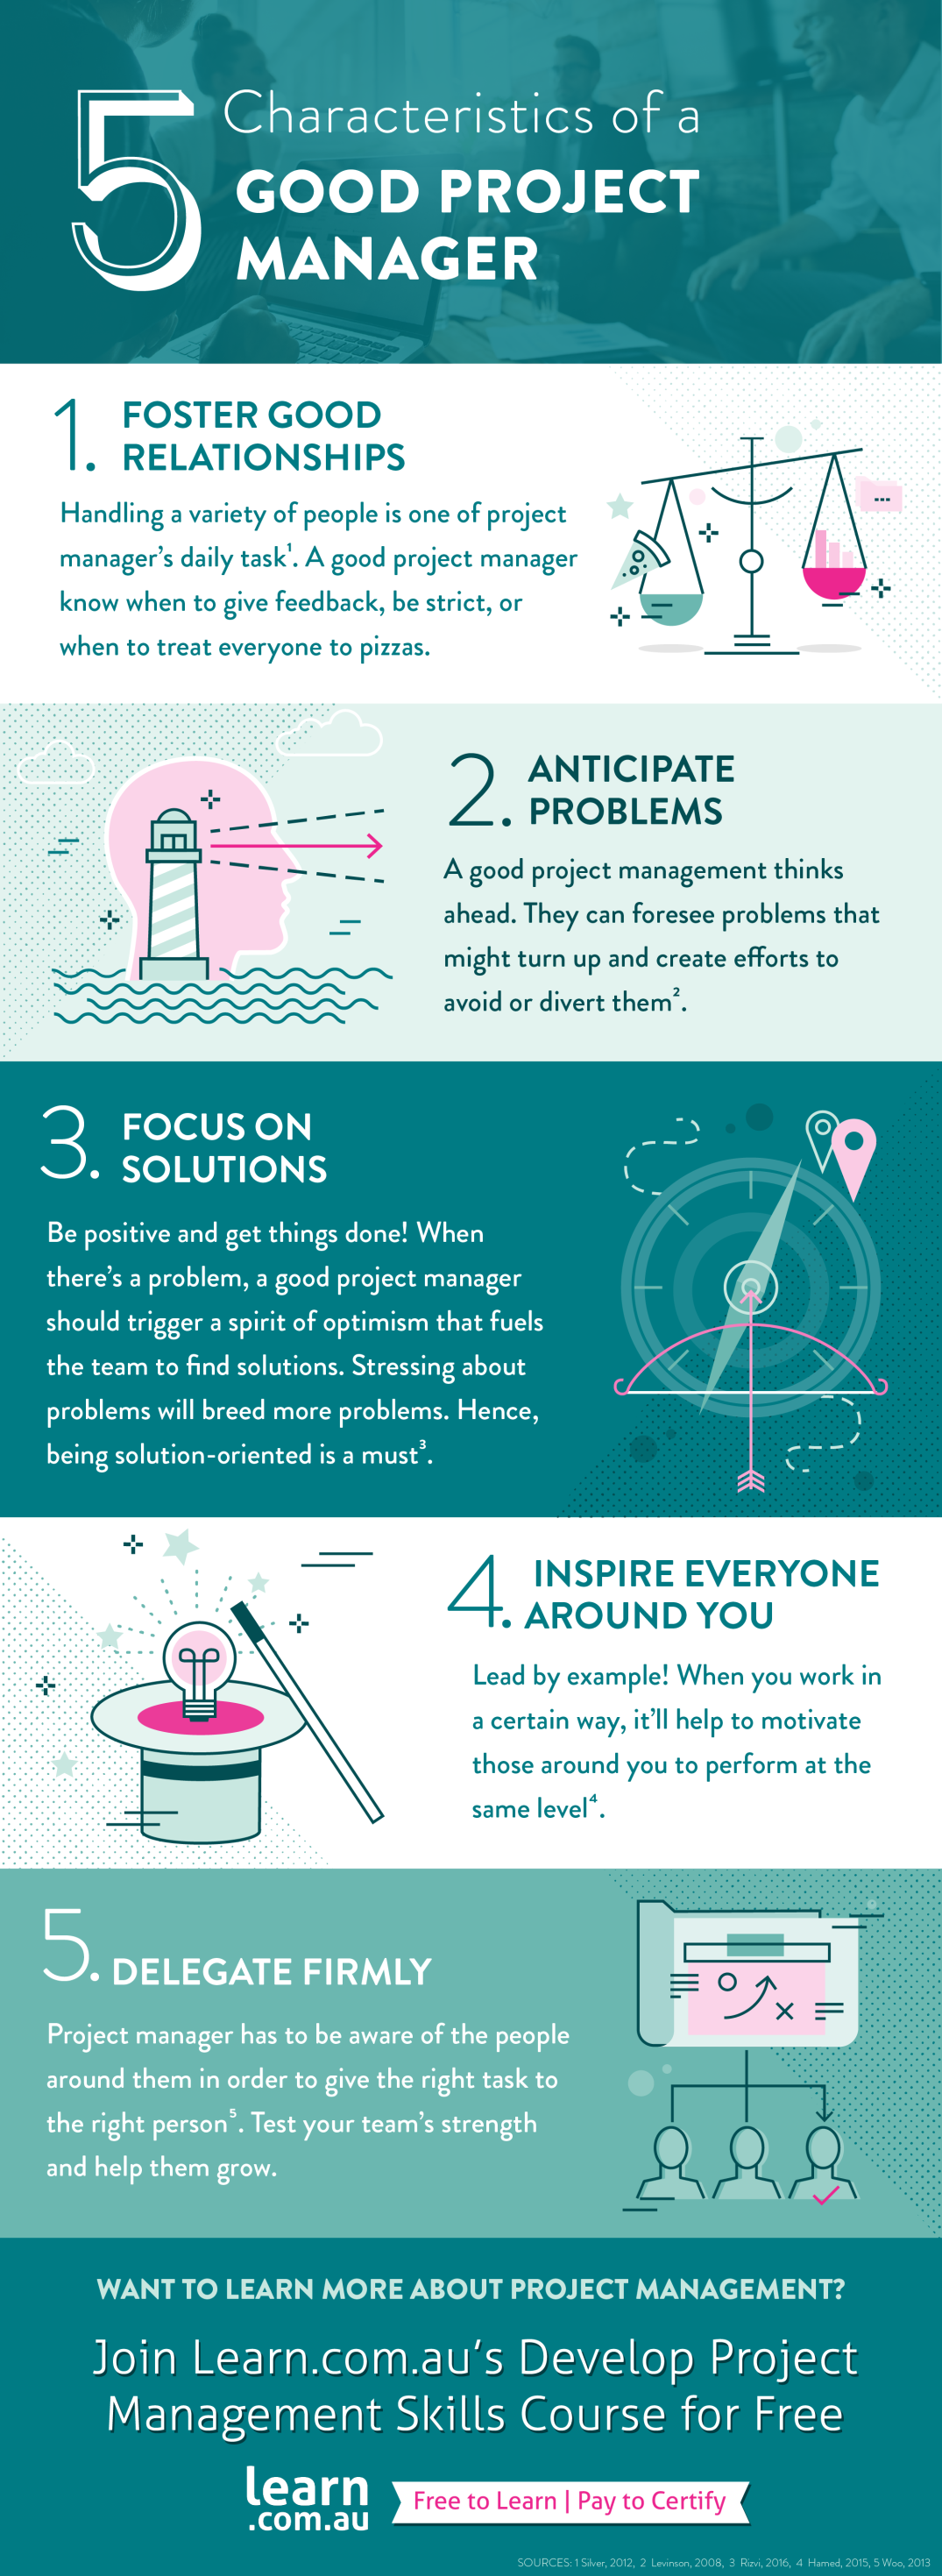 project management traits infographic-07